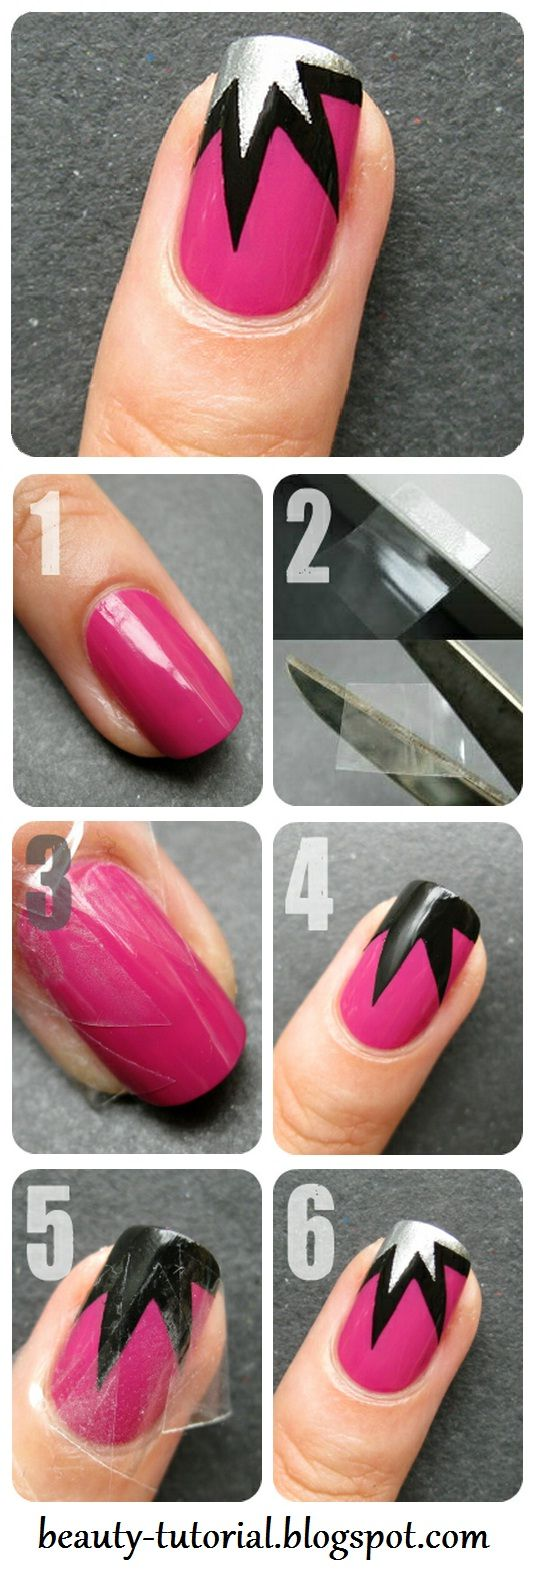 40 best pretty nails images on pinterest cute nails nail explosion nail art design tape manicure tutorial nadyana magazine awesome design just too much work for me to do on my nails though solutioingenieria Image collections